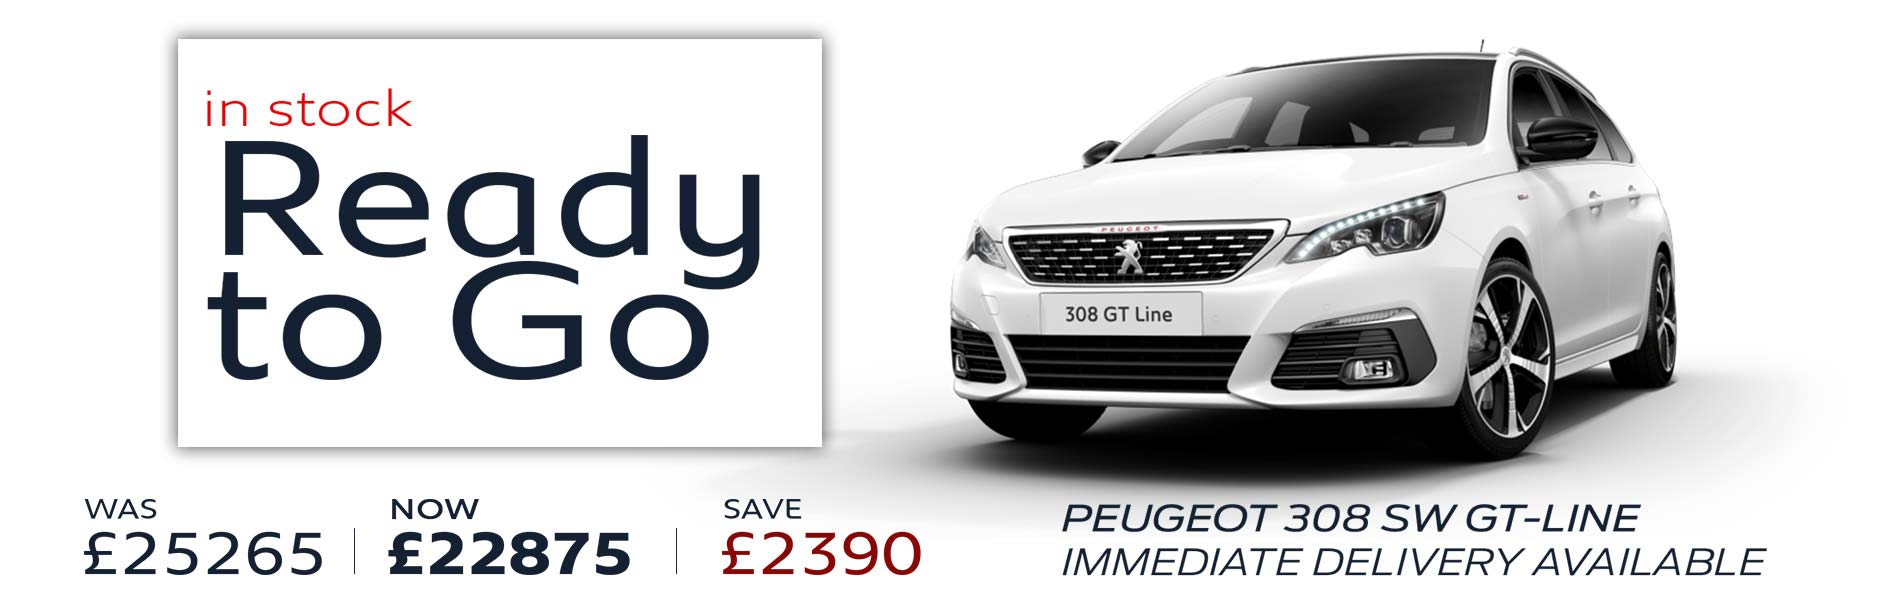 new-peugeot-308-sw-estate-car-gt-line-pearl-white-discount-hampshire-sli